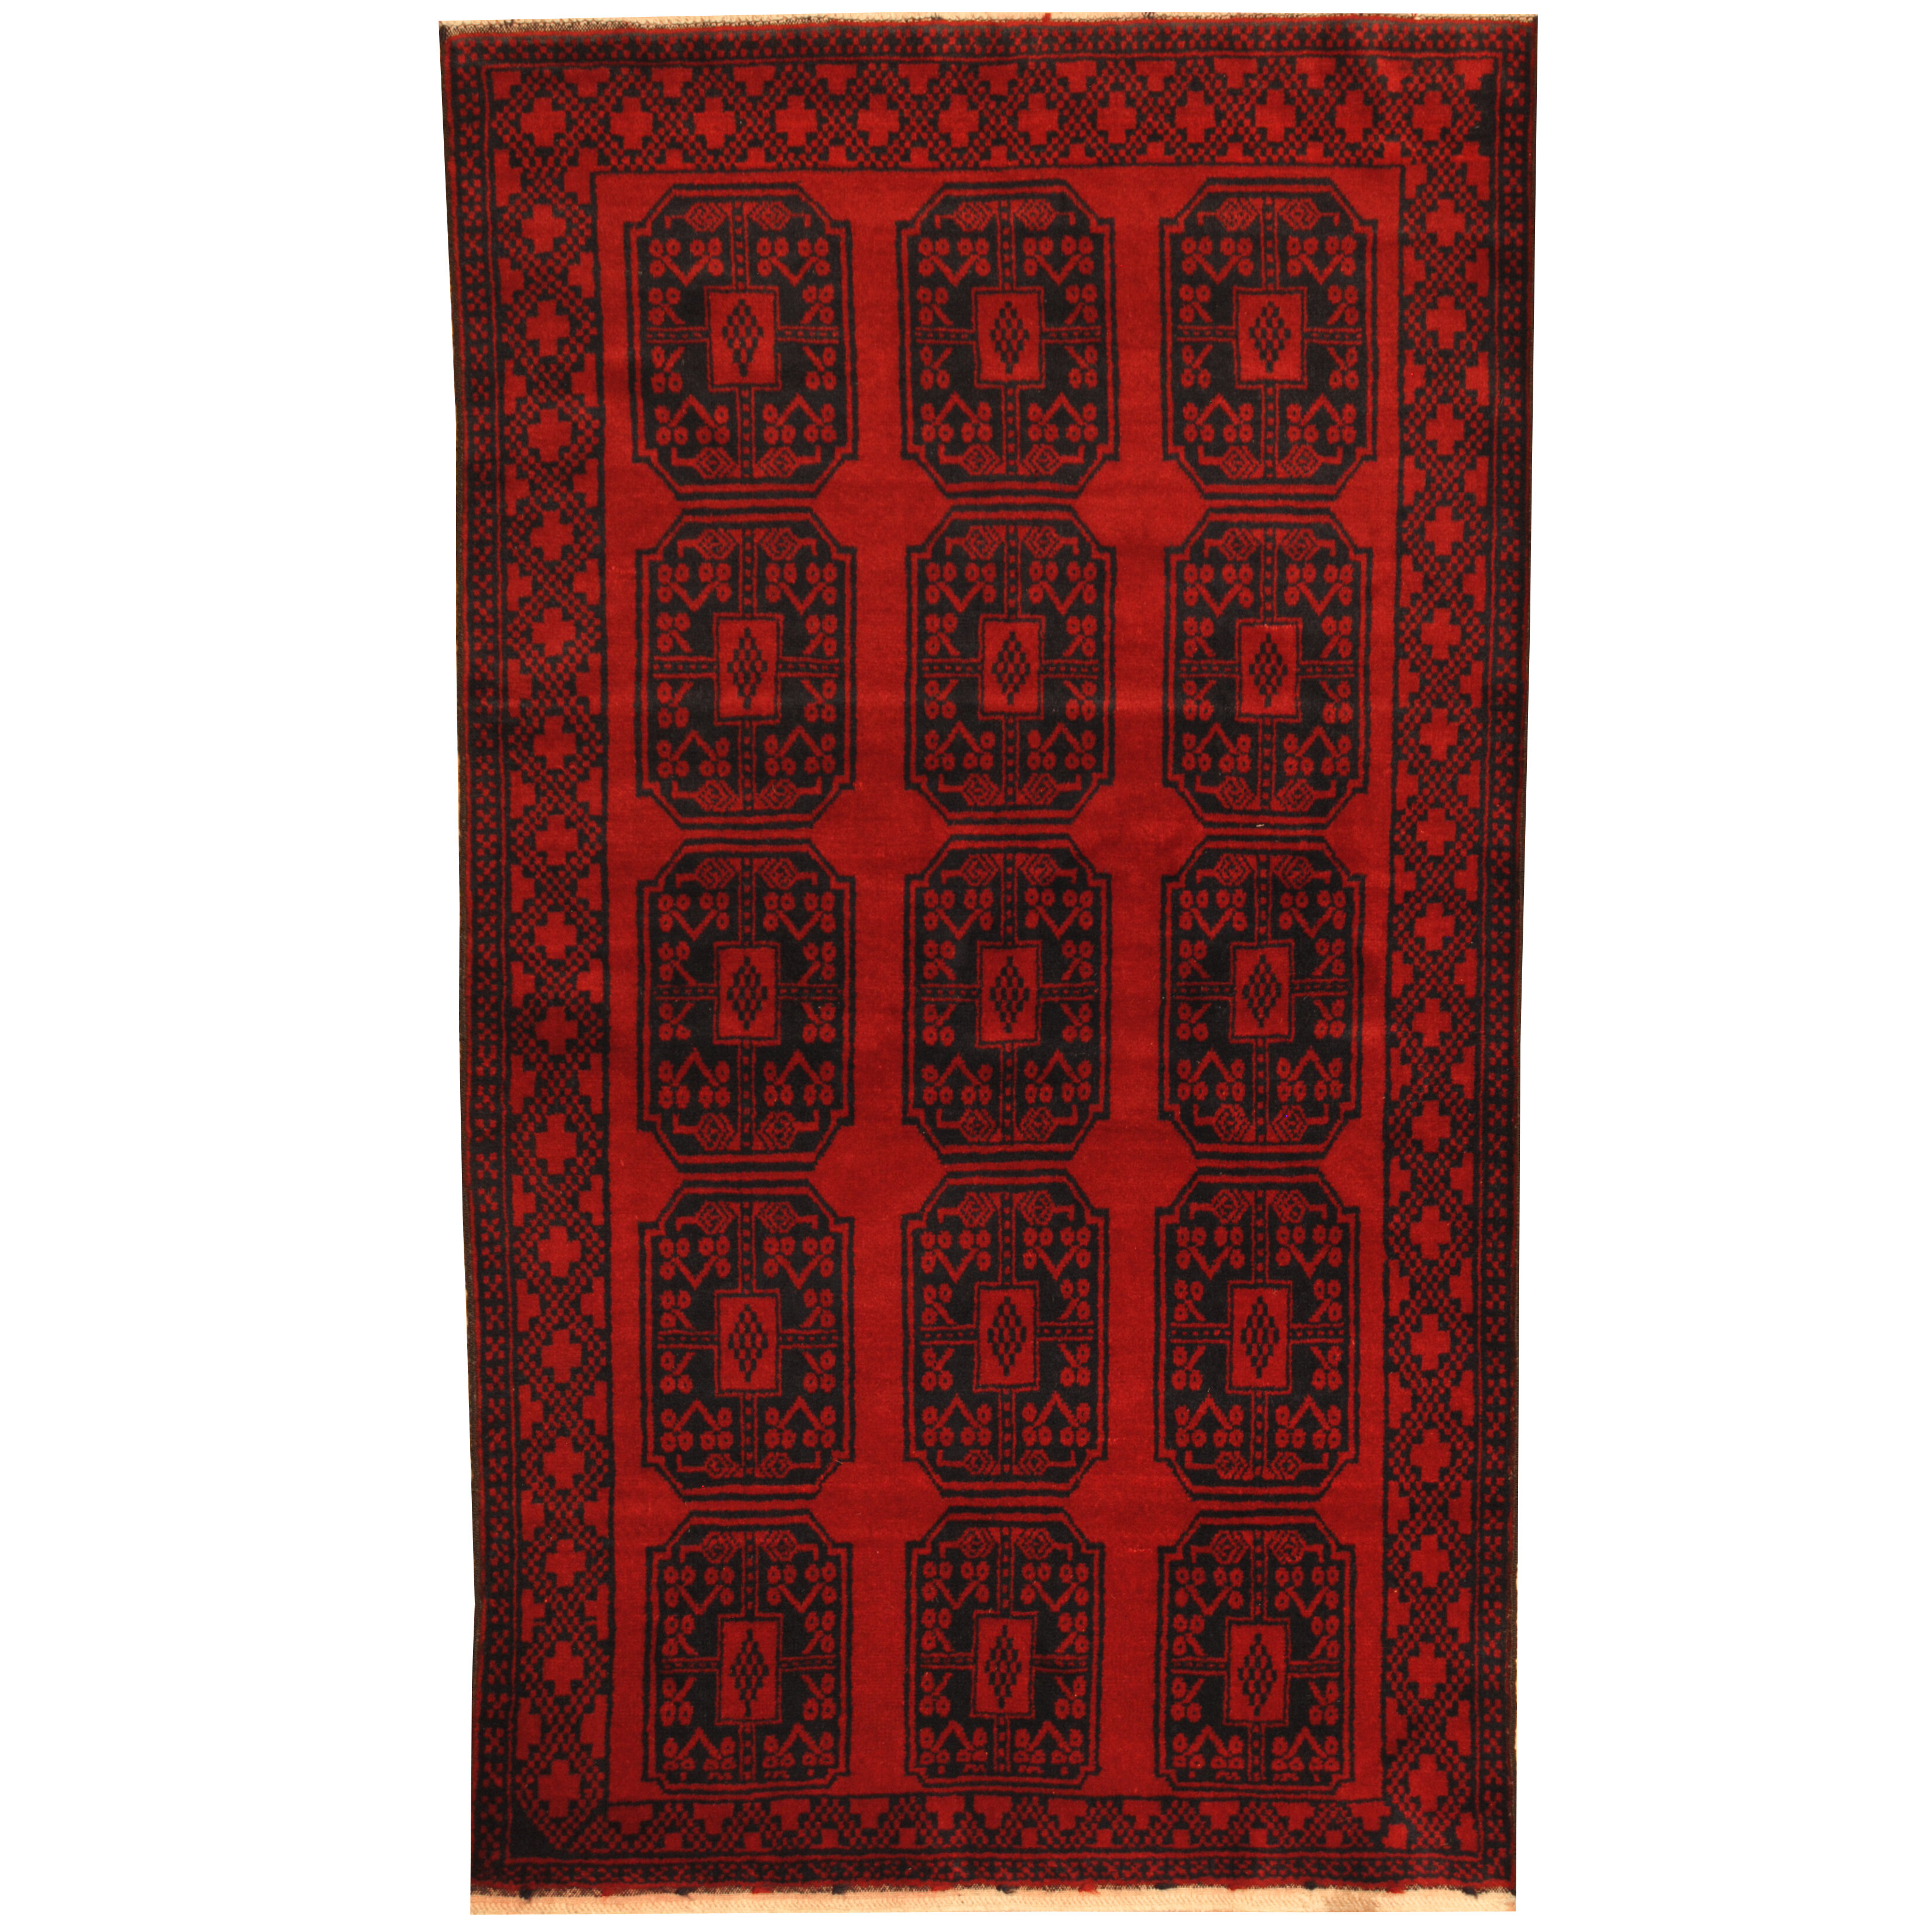 Isabelline Prentice Tribal Balouchi Hand Knotted Wool Red Navy Area Rug Wayfair